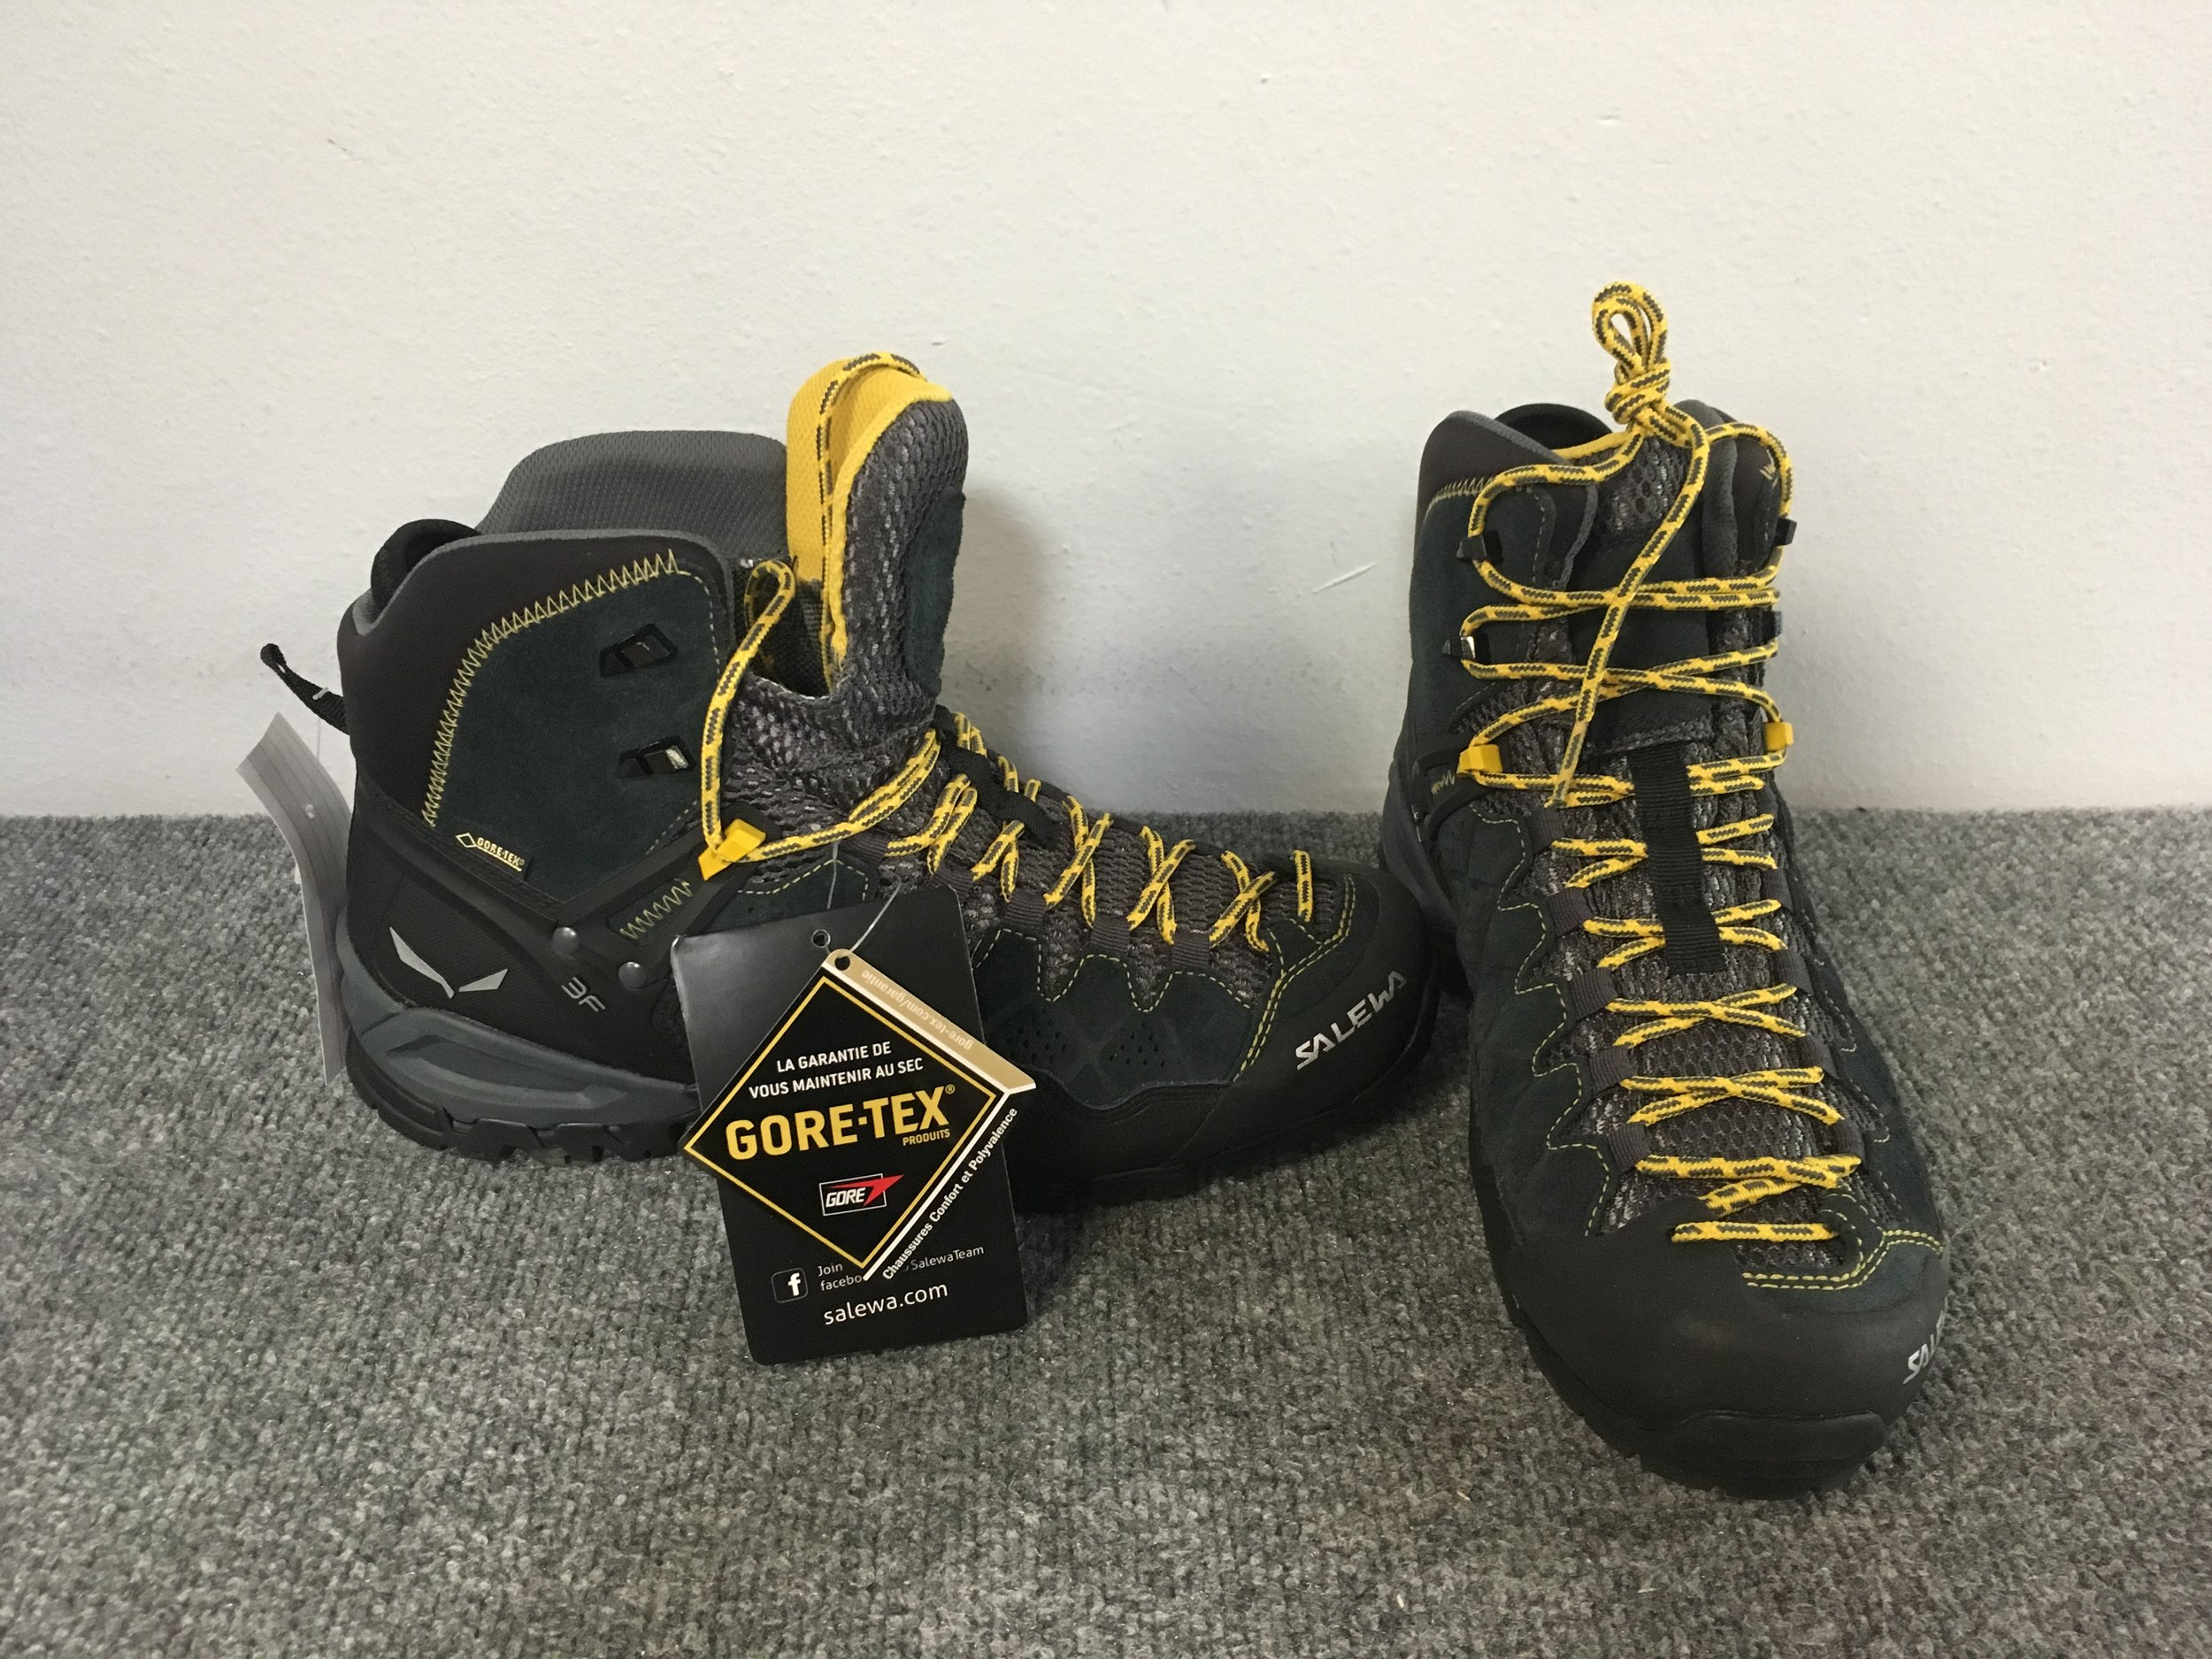 Salewa's Alp Trainer is the perfect hiking/mountaineering boot for the Summer and Fall seasons. The Alp Trainer comes equipped with a Gore-Tex membrane, Vibram soles, and a 3F support system that locks your heel in place when some extra rigidity is needed. Retail for the pair is listed at $200 but we got you covered at $129! The size is men's 42.5